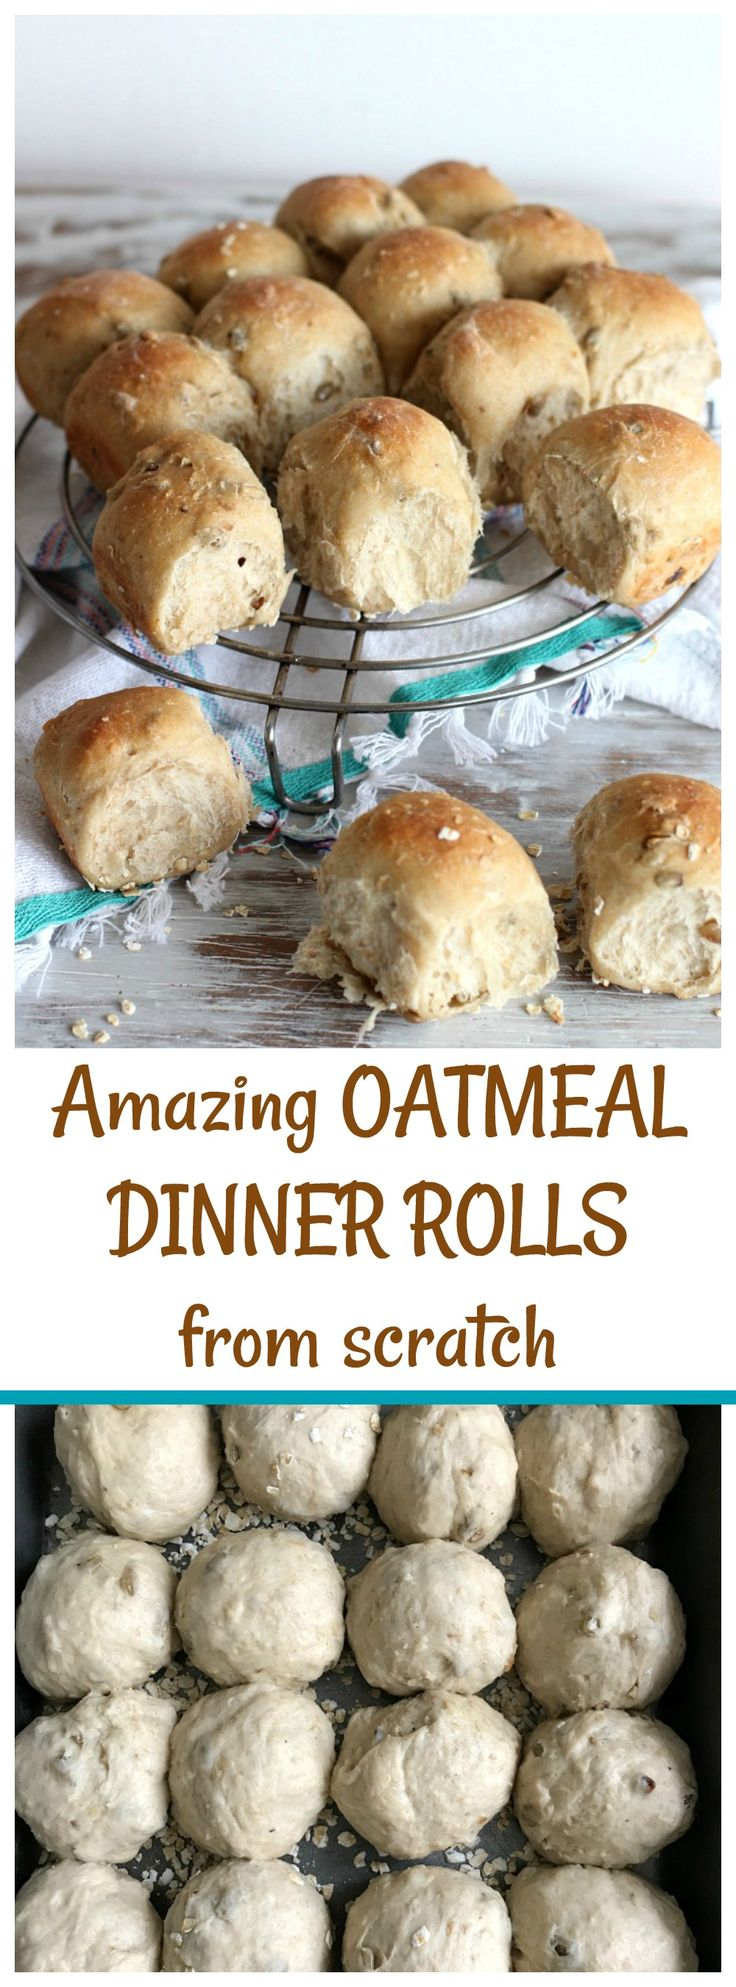 SUNFLOWER OATMEAL DINNER ROLLS are soft and crusty. Made with a straight dough, they freeze well and can be made into loaves too.